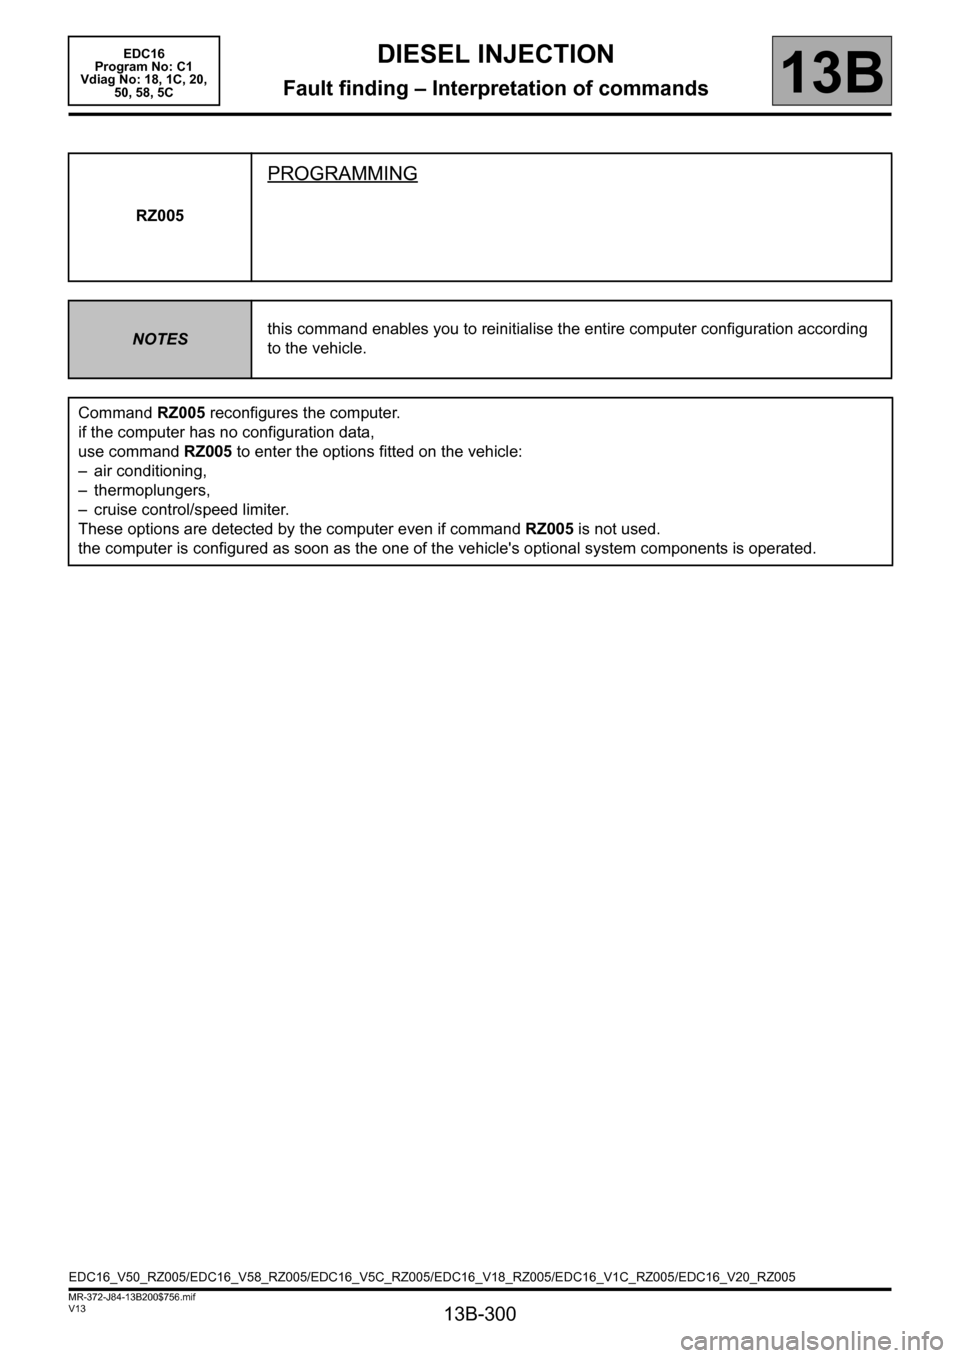 RENAULT SCENIC 2011 J95 / 3.G Engine And Peripherals EDC16 Workshop Manual, Page 300